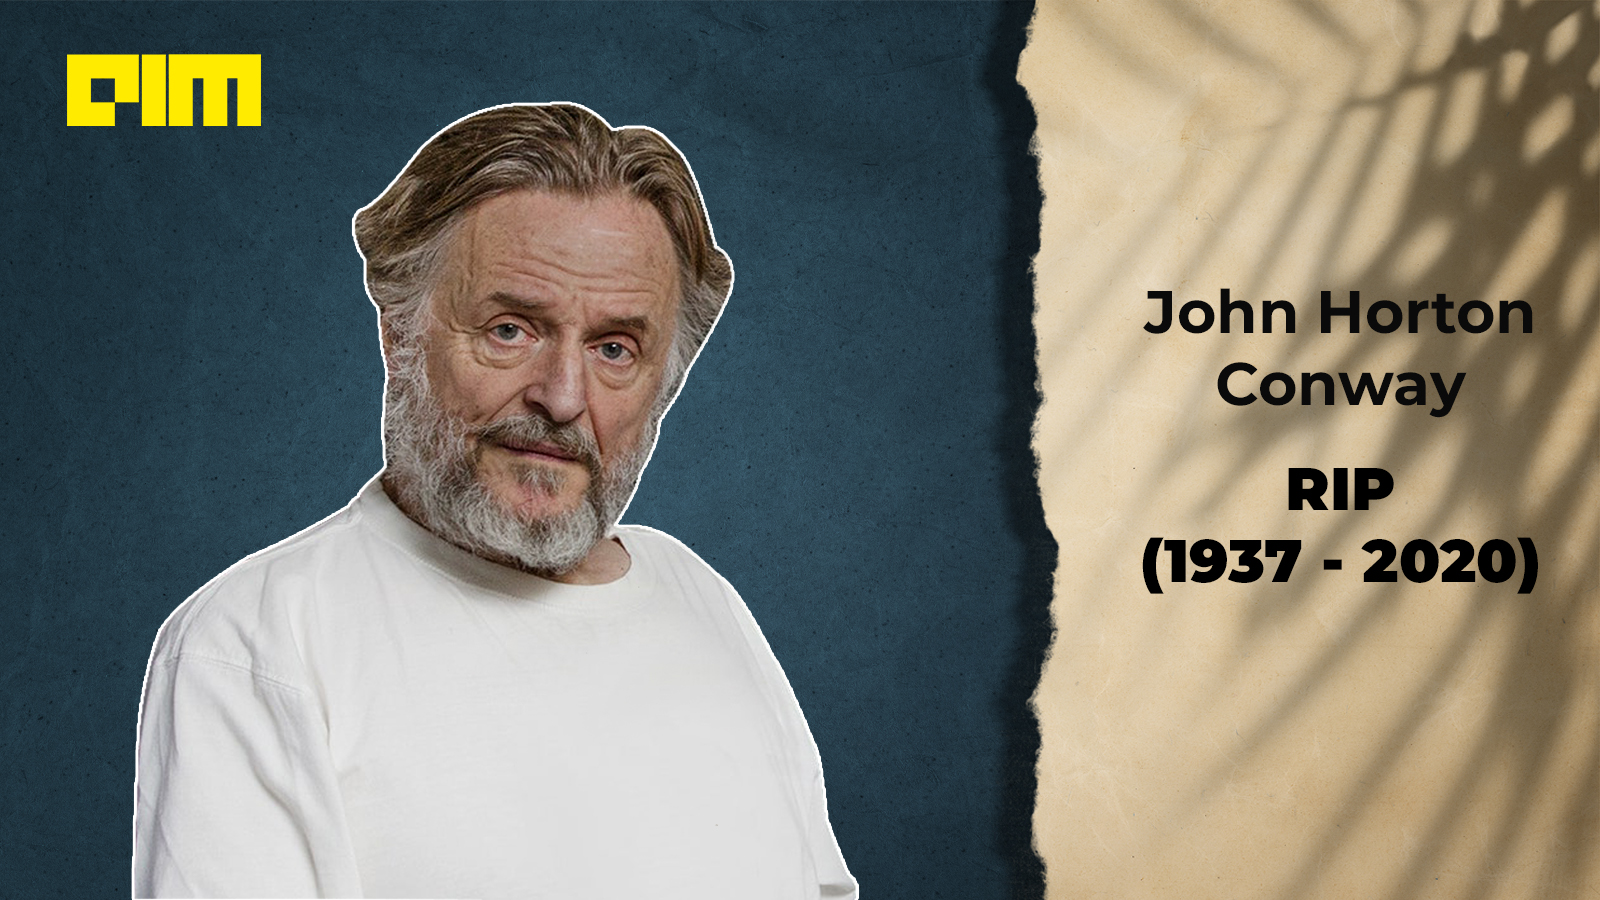 Renowned Princeton Mathematician & Inventor Of The 'Game Of Life', John Horton Conway Dies From COVID-19